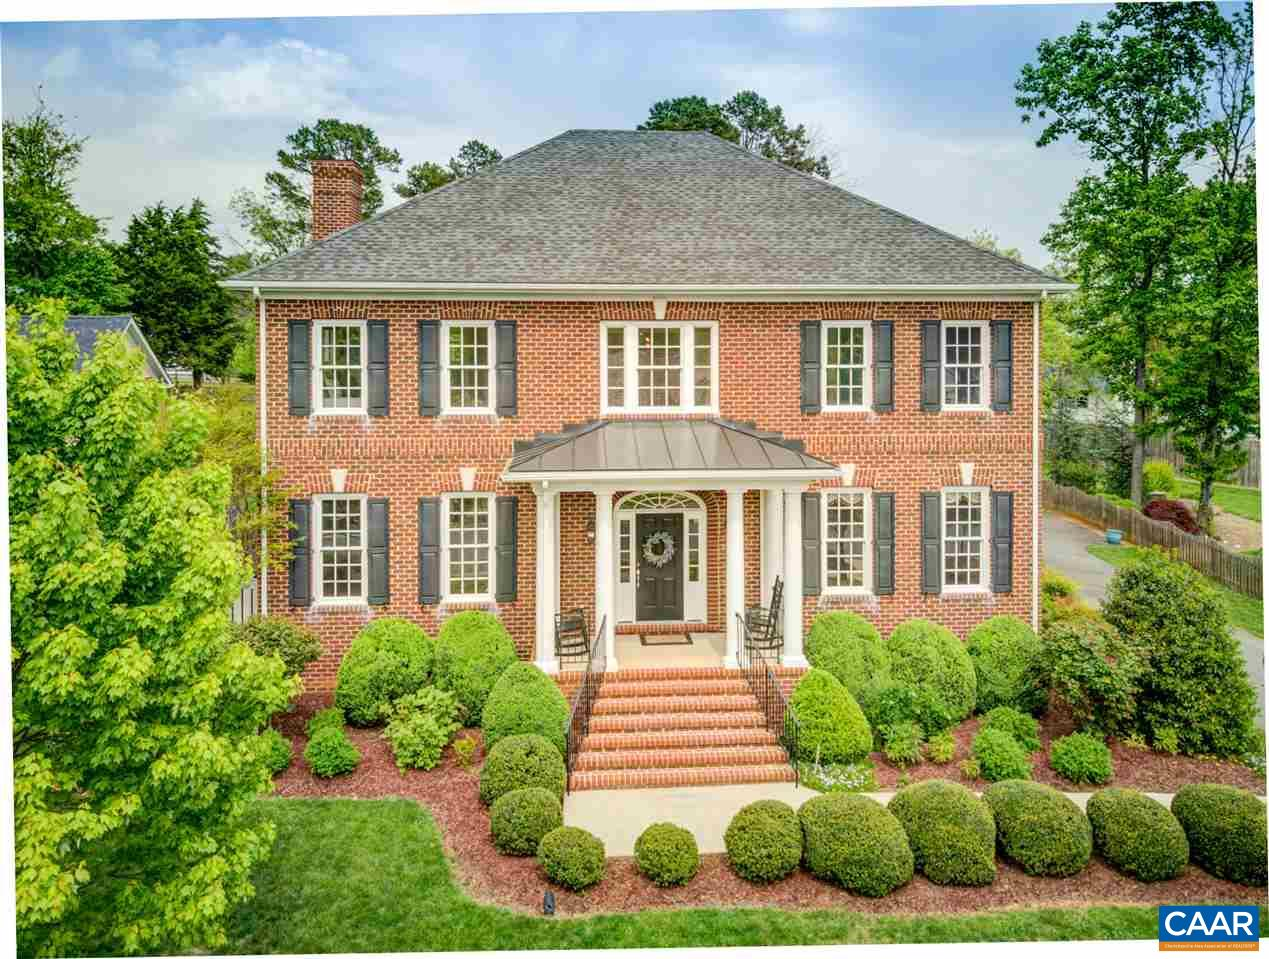 A perfect combo of traditional elegance and modern luxury, this all-brick Colonial has a grand foyer that flows into the formal dining room, stately office with custom millwork and spacious family room with a wall of windows that looks out to a true backyard oasis that is one of Old Trail's most level and private. The gourmet kitchen with granite tops, maple Shaker cabinets and Bosch stainless appliances opens to the covered patio for the ideal indoor/outdoor flow. The luxurious master suite retreat offers a sitting room, her/his closets and marble vanities. A rear staircase rises above the full 4-car garage to the theatre room, rec room and full bath. Situated on a cul-de-sac with minimal traffic and peace of mind for safe kid's play.